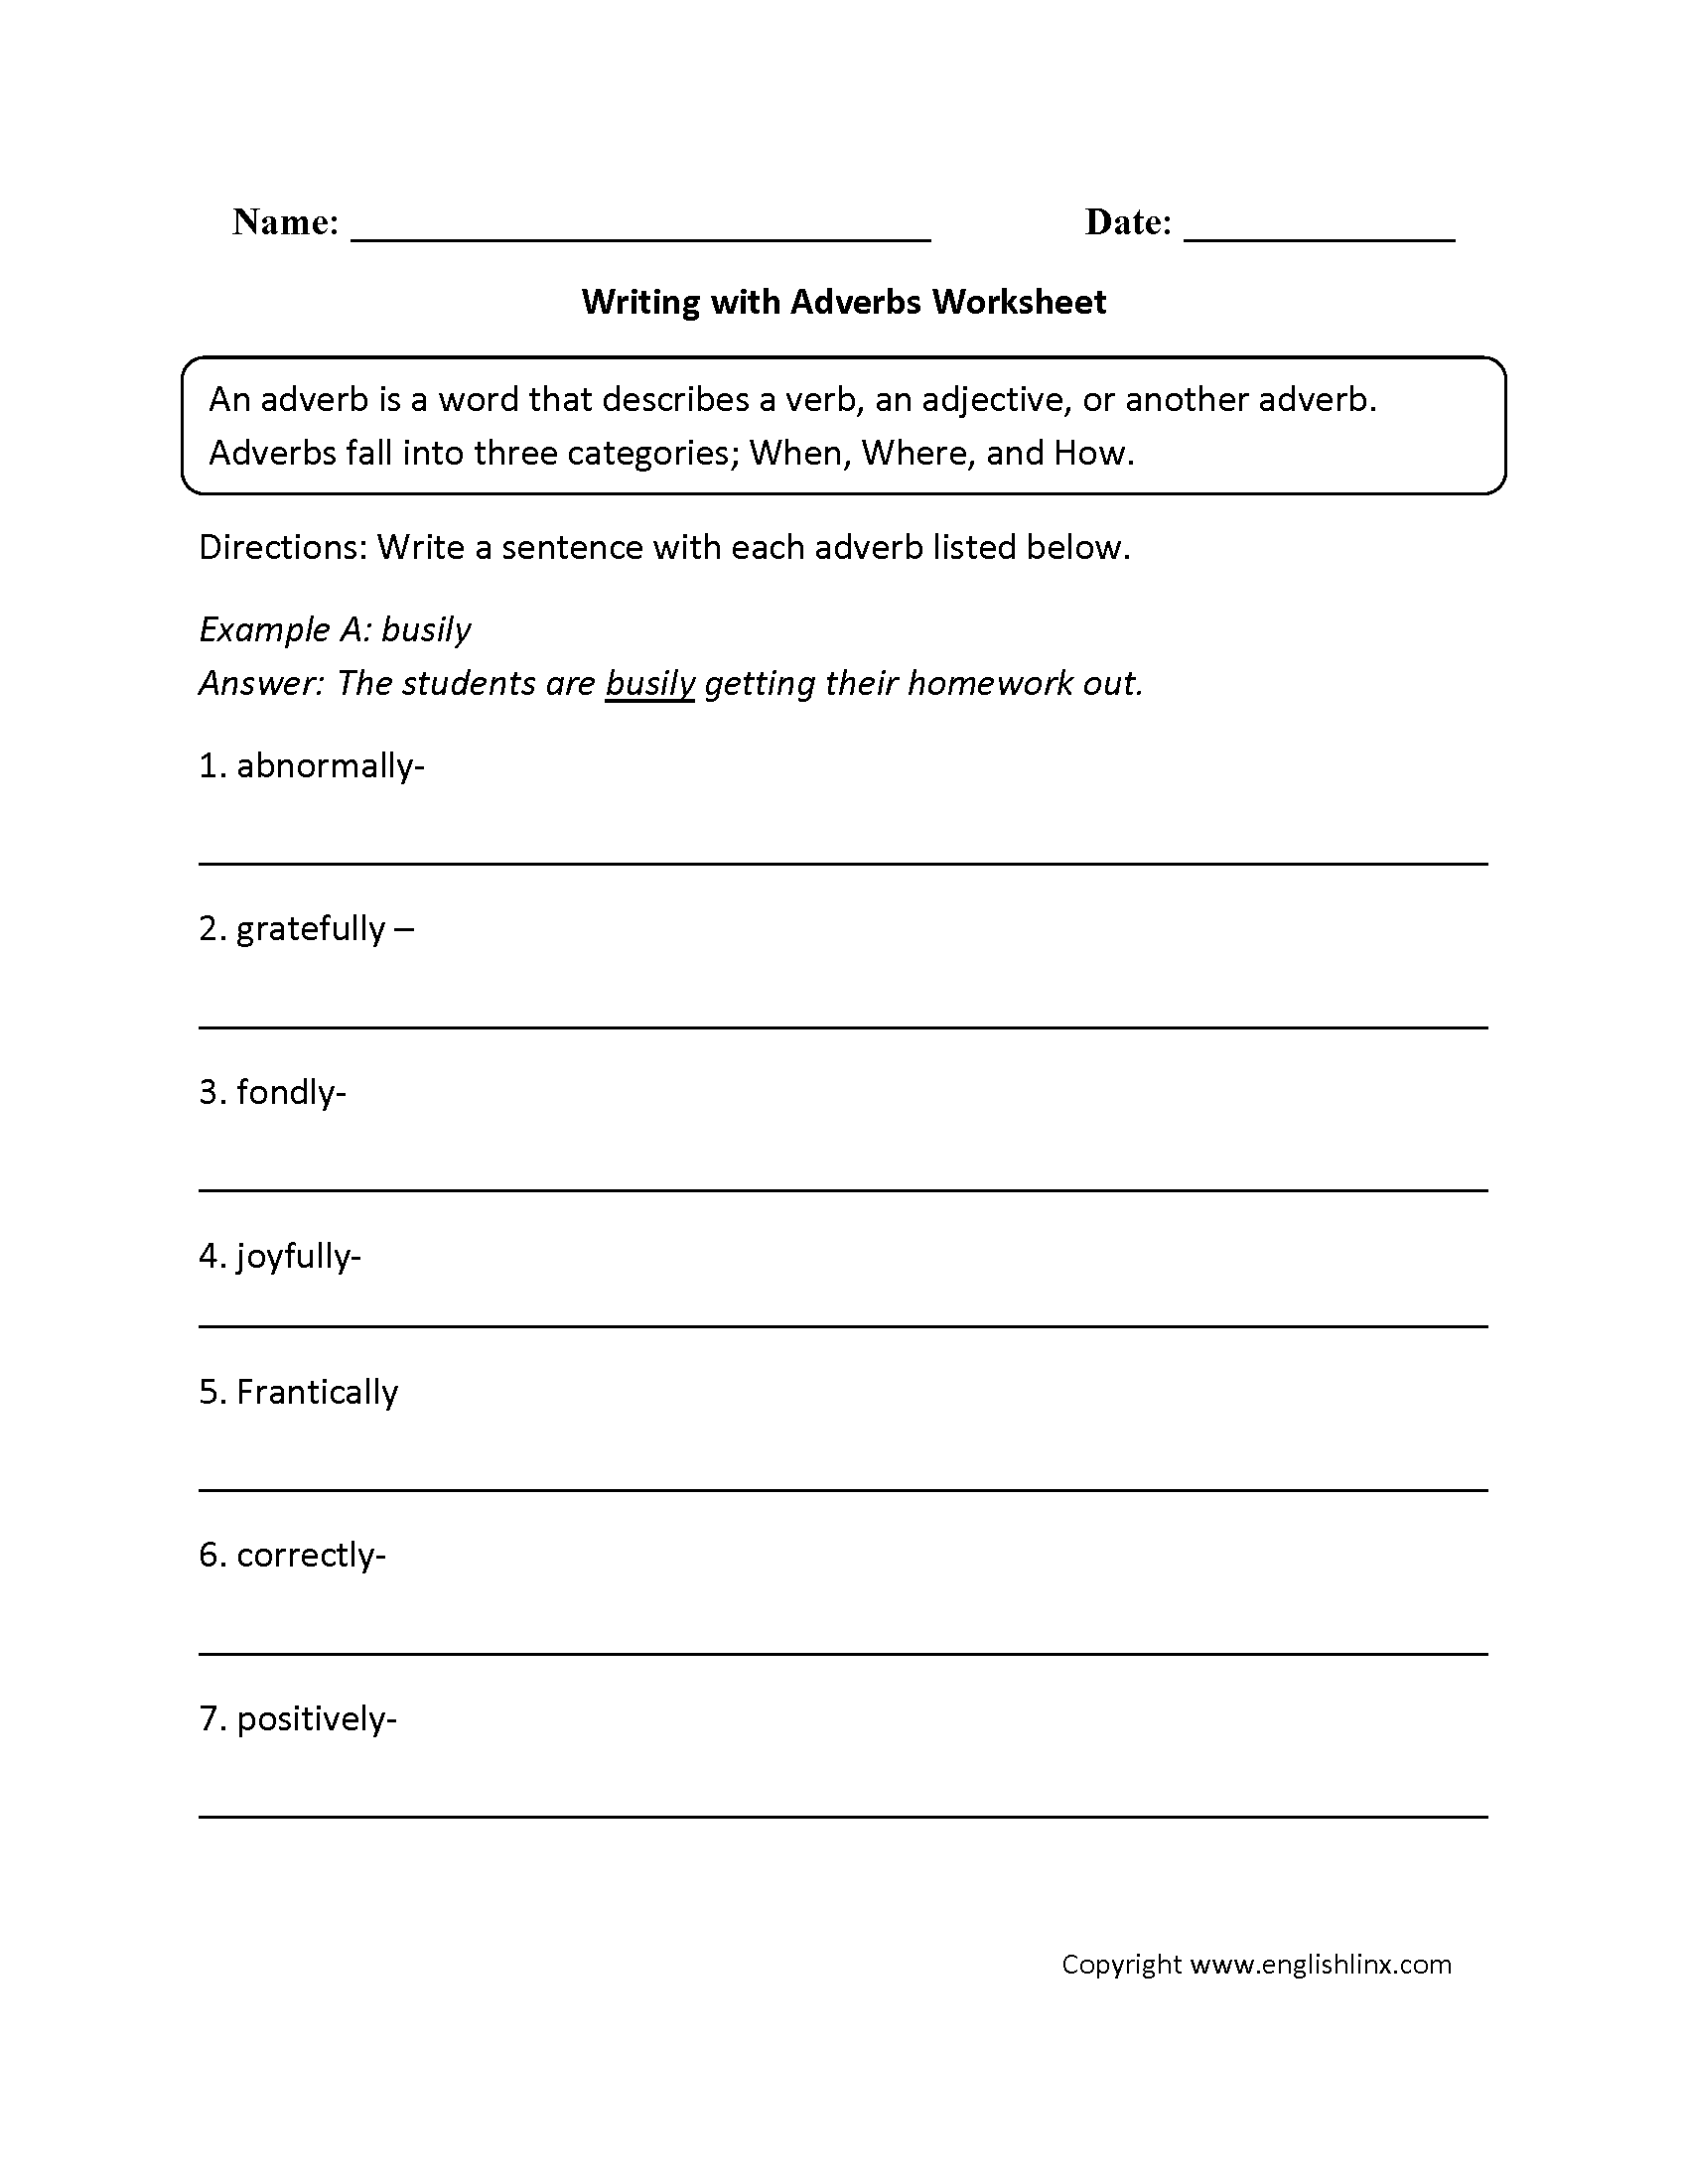 Worksheets Adverbs Worksheet adverbs worksheets regular grades 6 8 worksheets